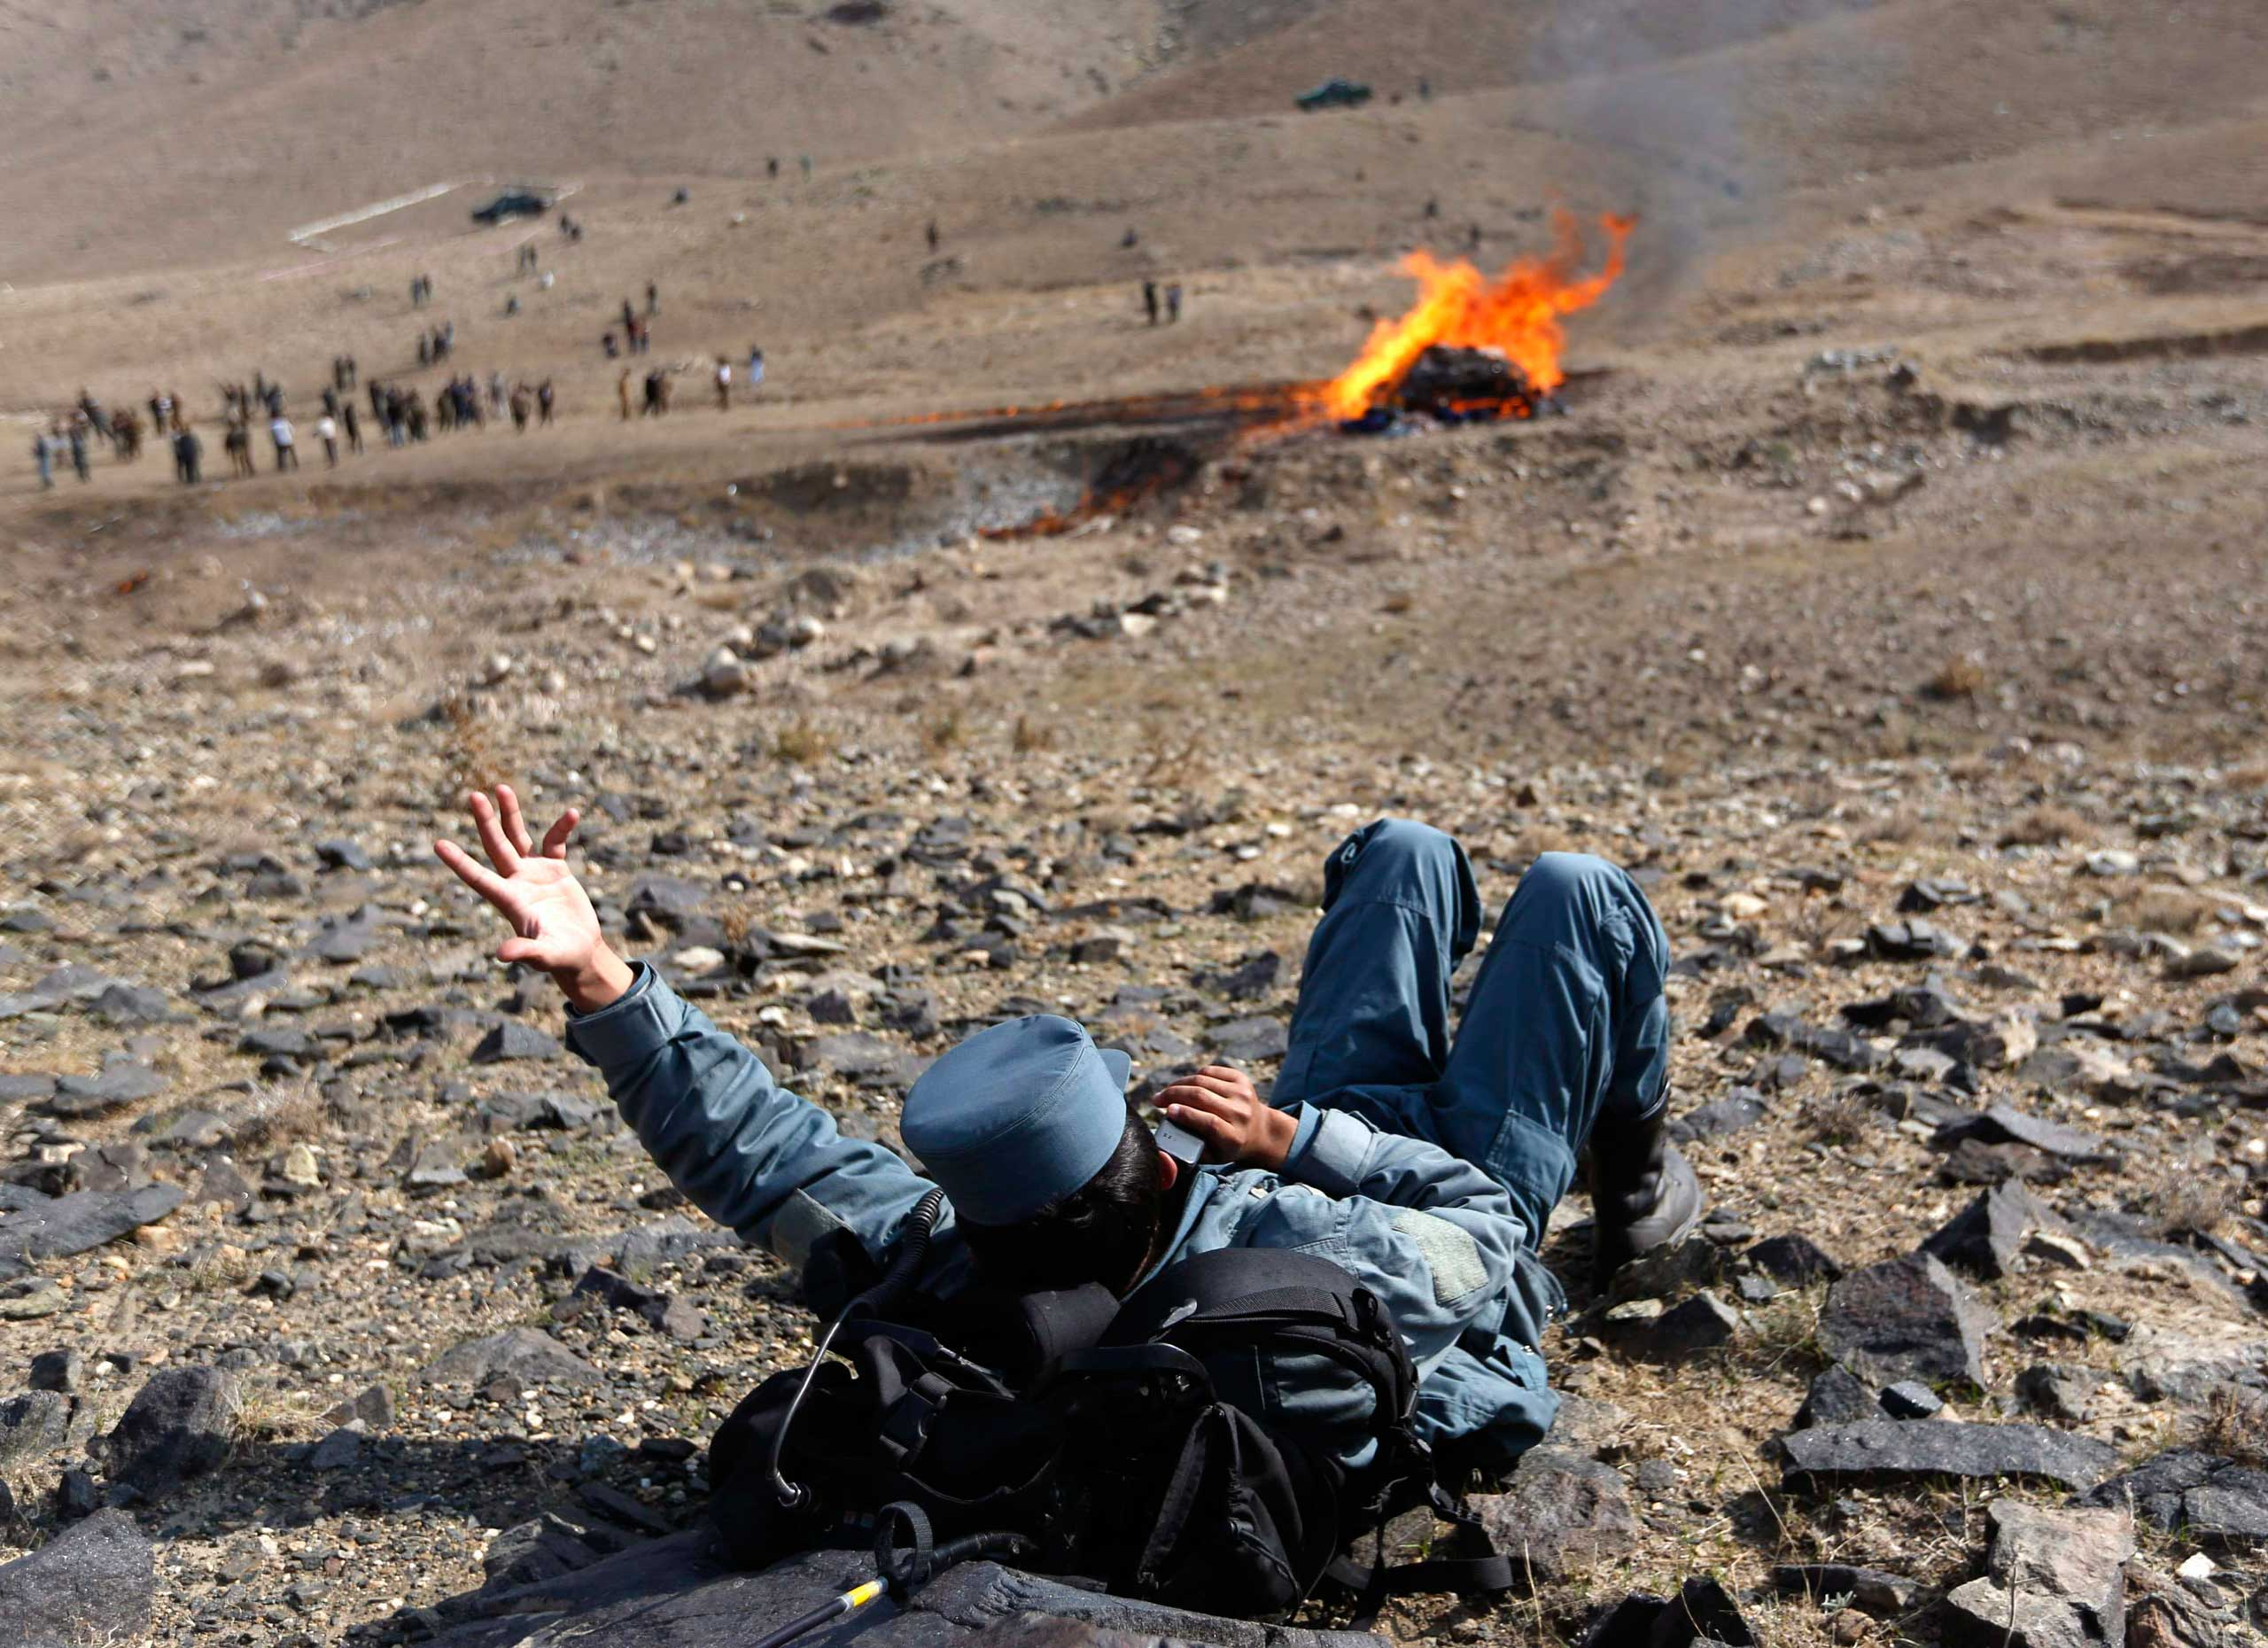 Oct. 29, 2014. An Afghan policeman talks on his phone during the burning of illegal narcotics on the outskirts of Kabul. Over 20 tons of narcotics, seized by Afghan security forces, were destroyed by the police on Wednesday, the U.N. Office on Drugs and Crime (UNODC) said.